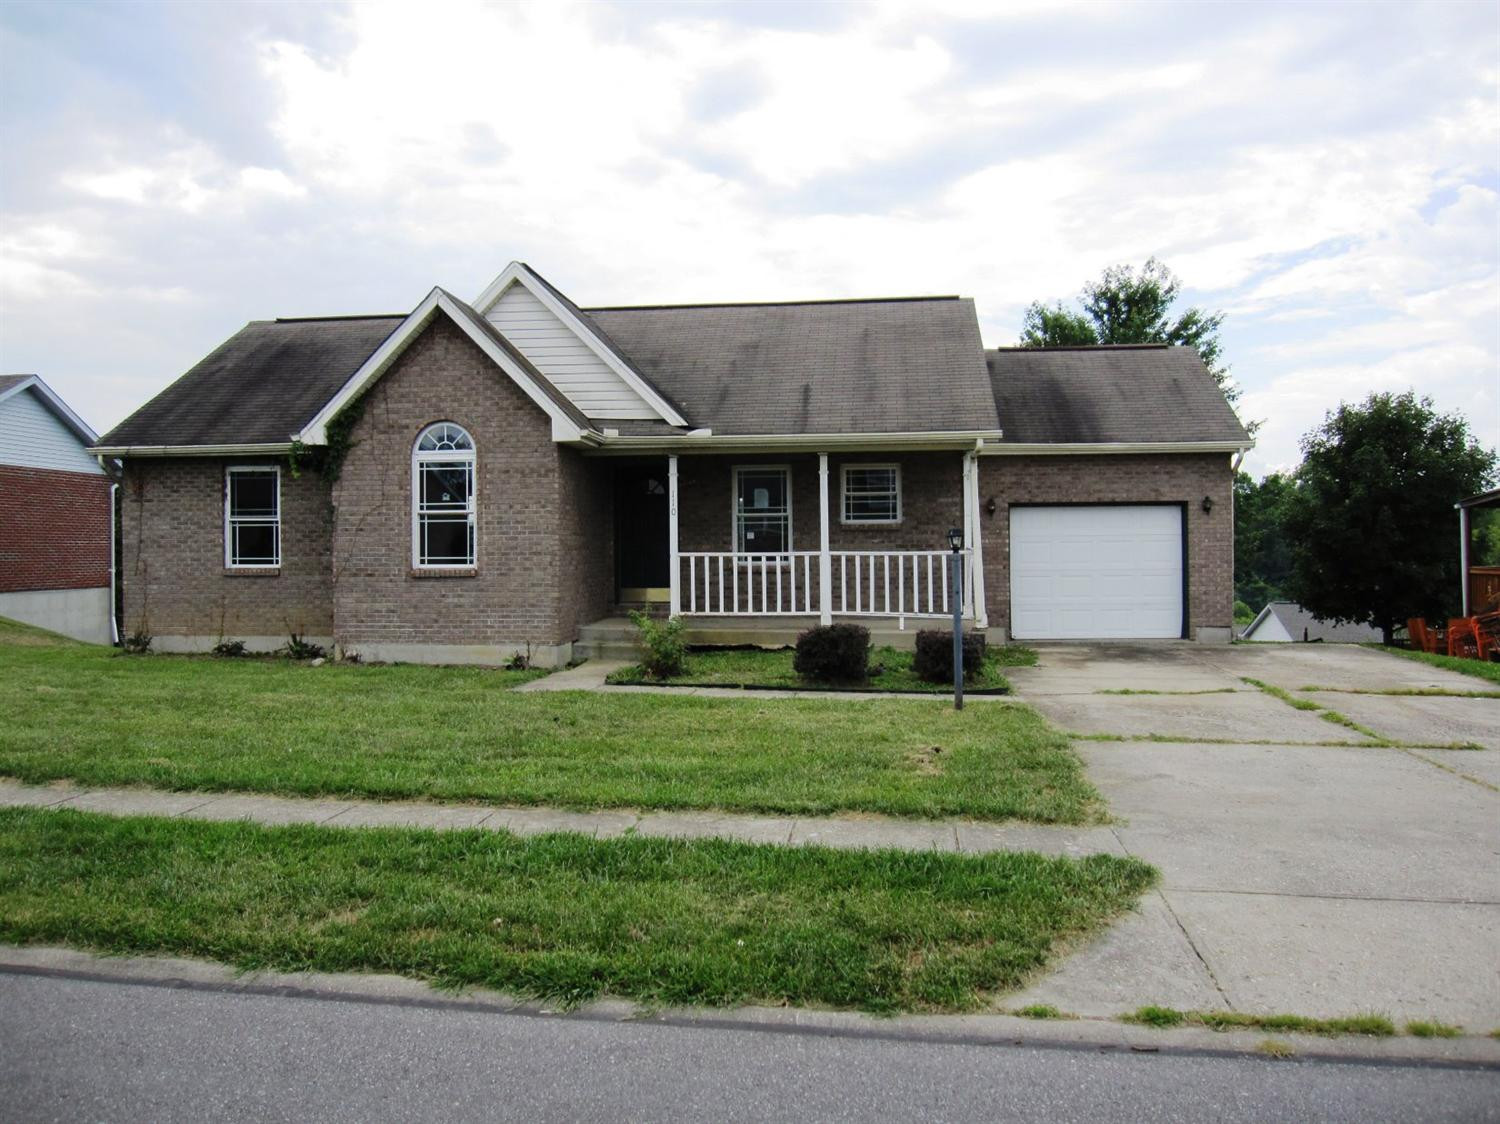 Photo 1 for 110 Barley Cir Crittenden, KY 41030